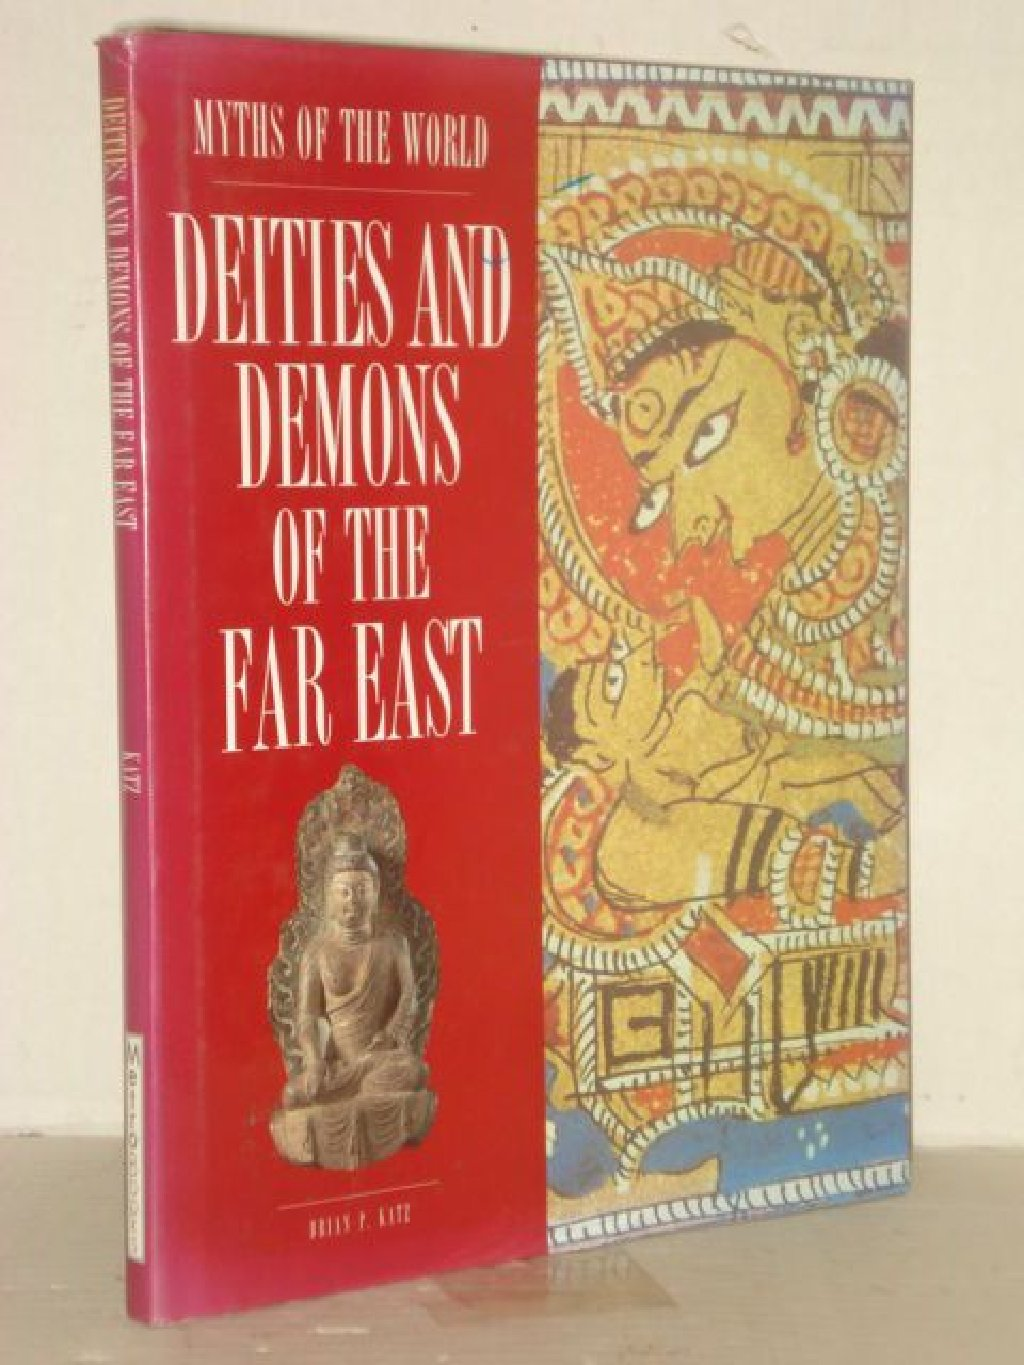 DEITIES AND DEMONS OF THE FAR EAST